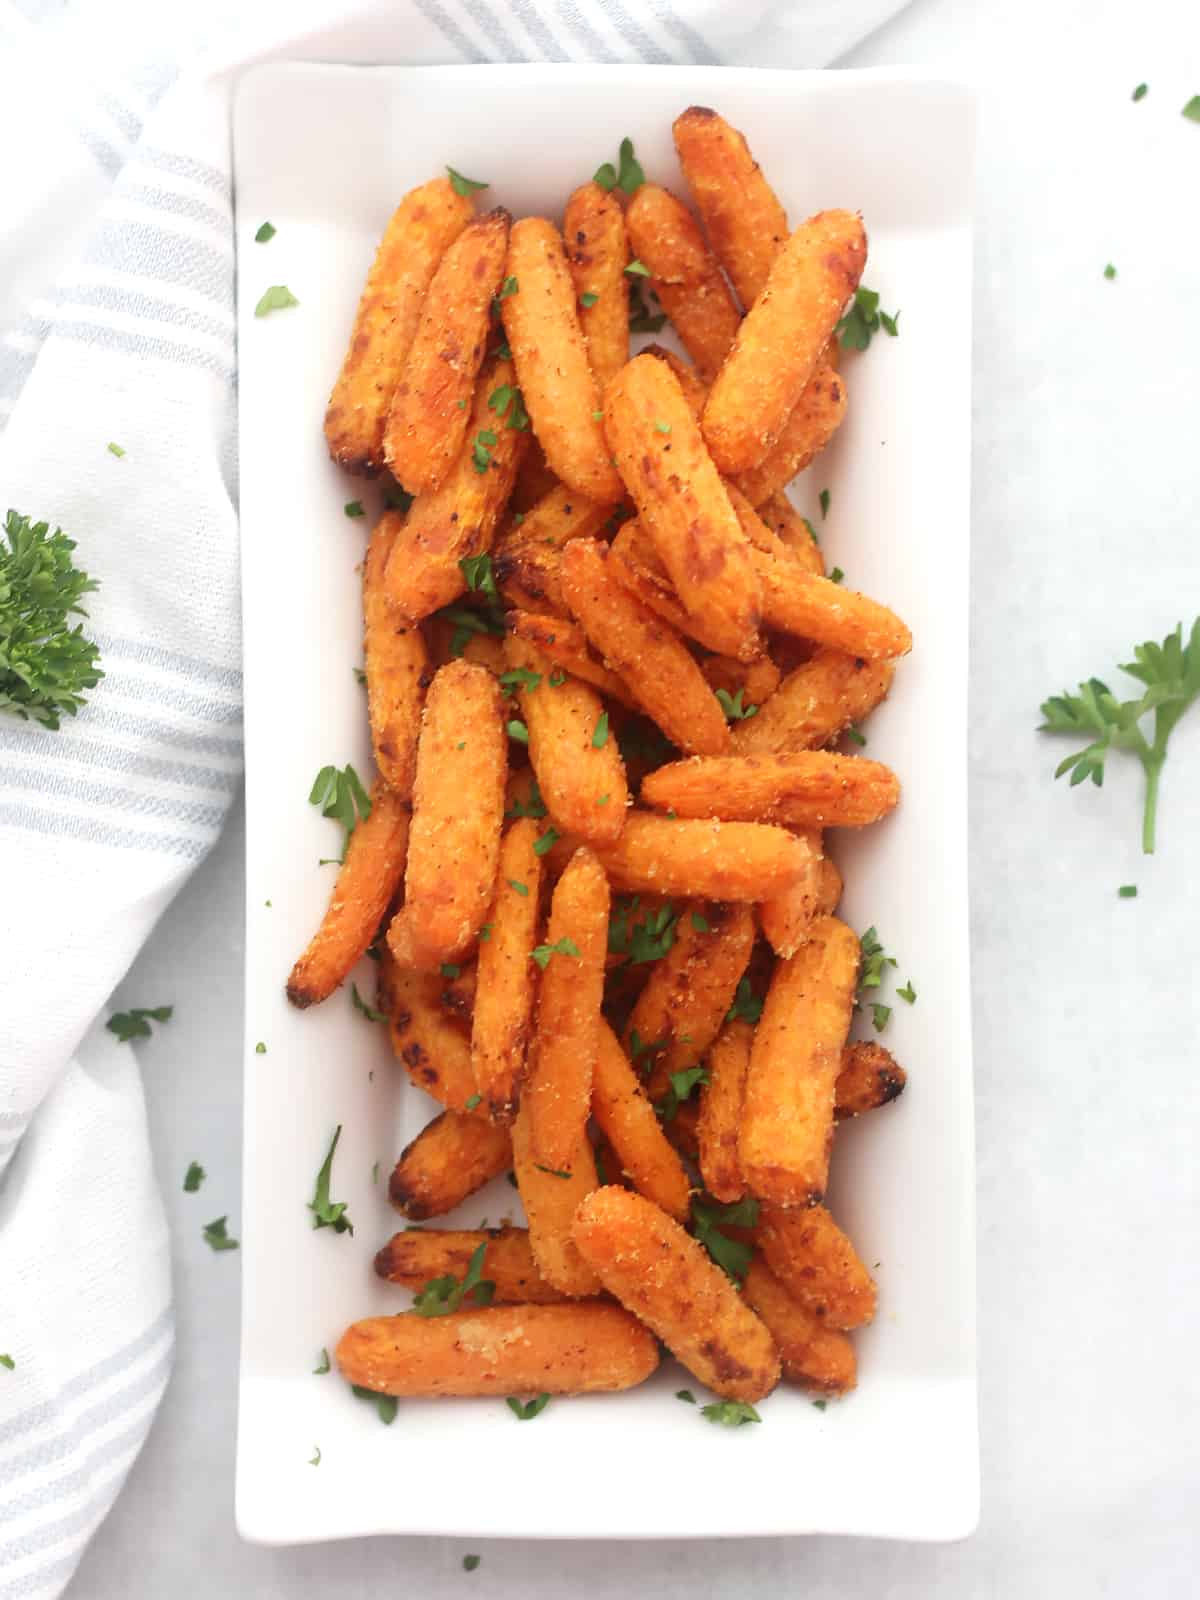 Air fryer carrots on a white serving plate next to a blue and white cloth with parsley garnish.